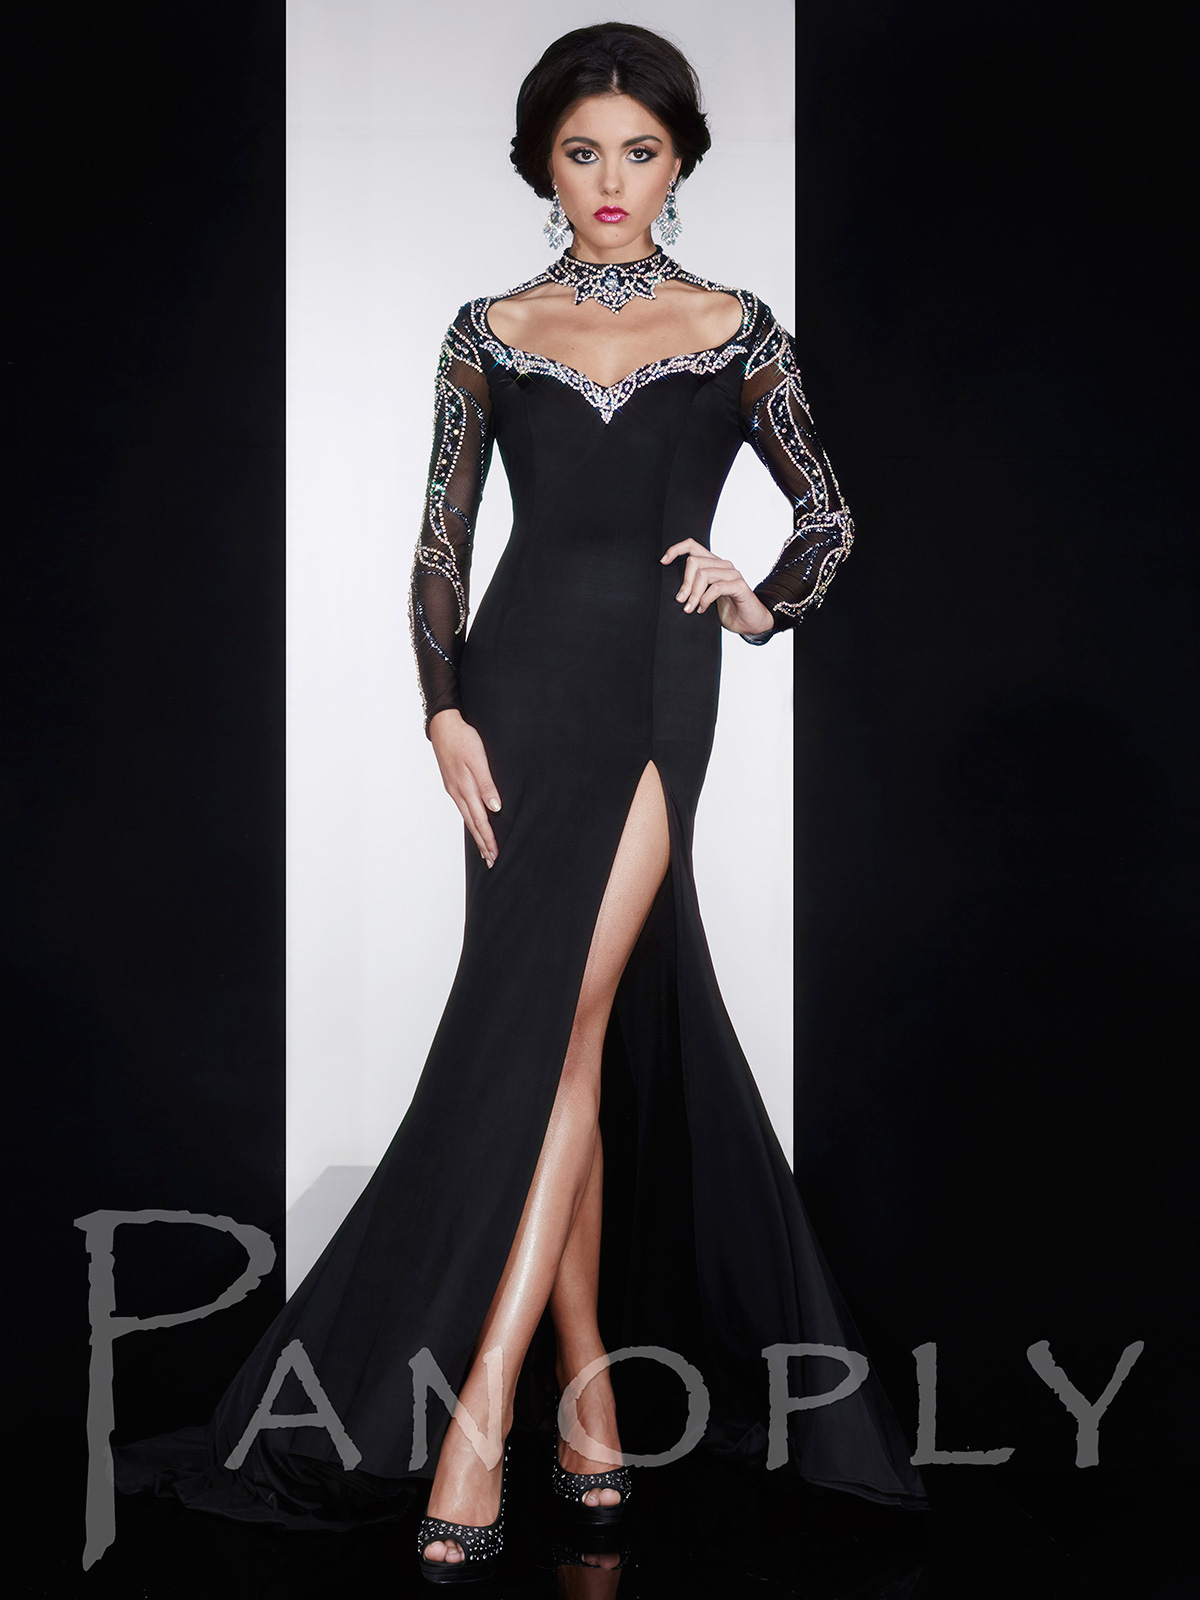 Beaded Collar Jersey Pageant Dress Panoply 14592|PageantDesigns.com